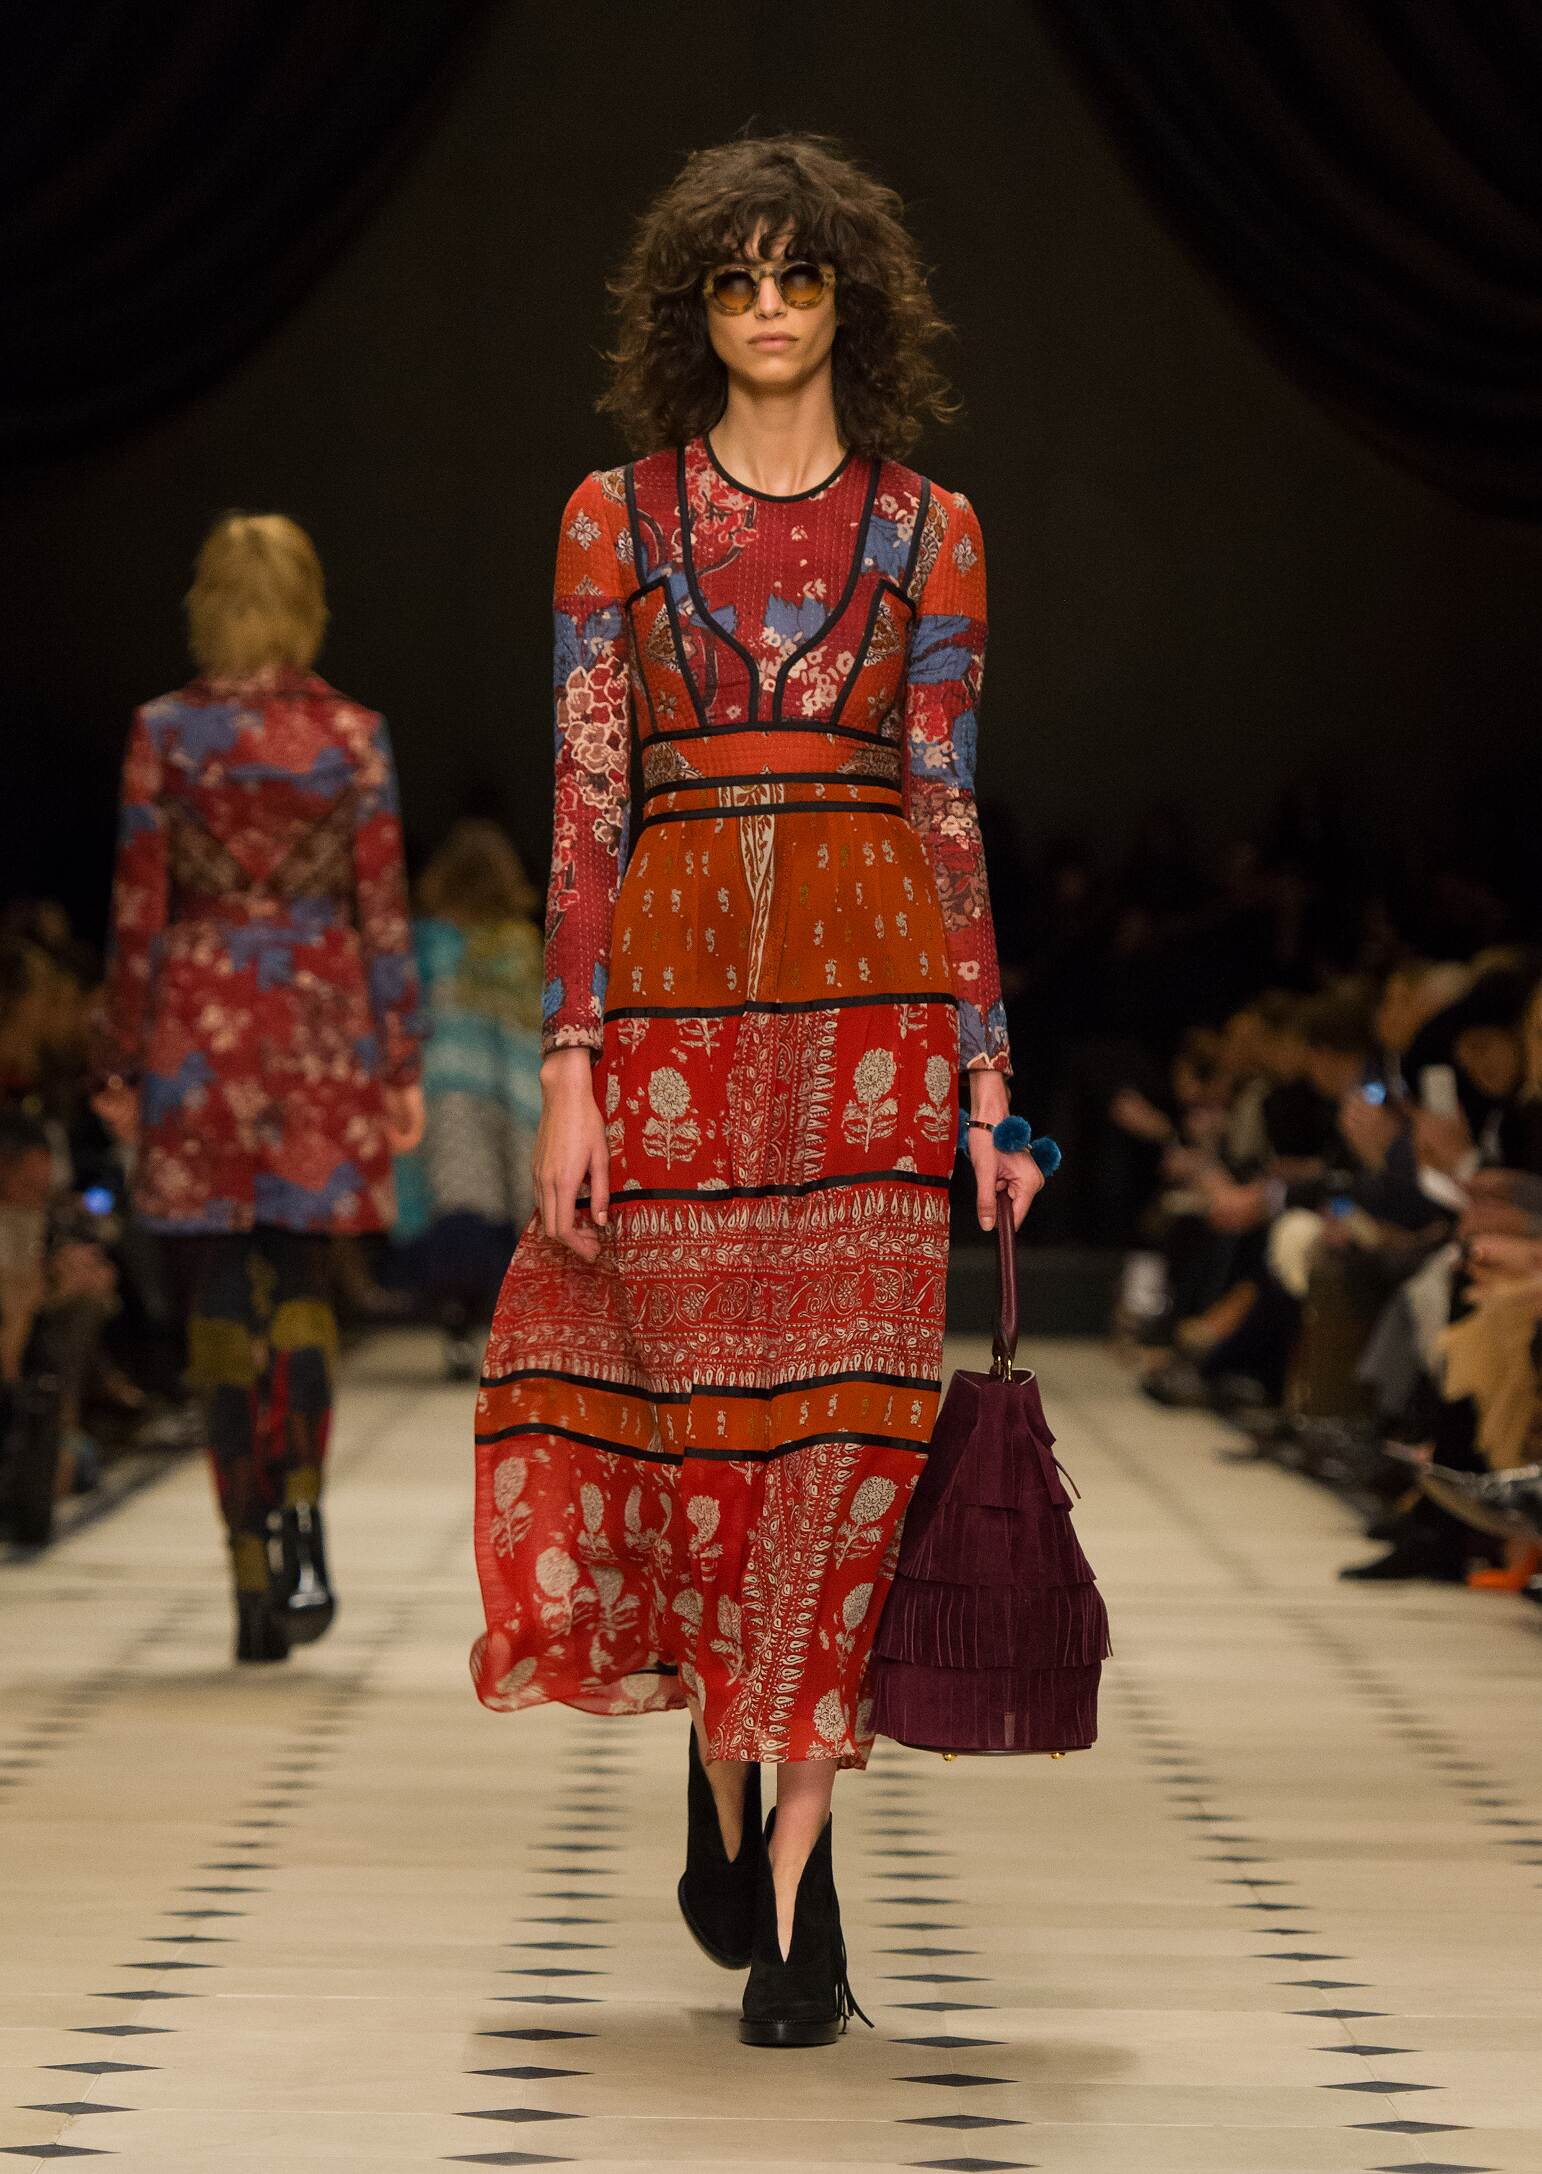 931bf6c00018 BURBERRY PRORSUM FALL WINTER 2015-16 WOMEN S COLLECTION